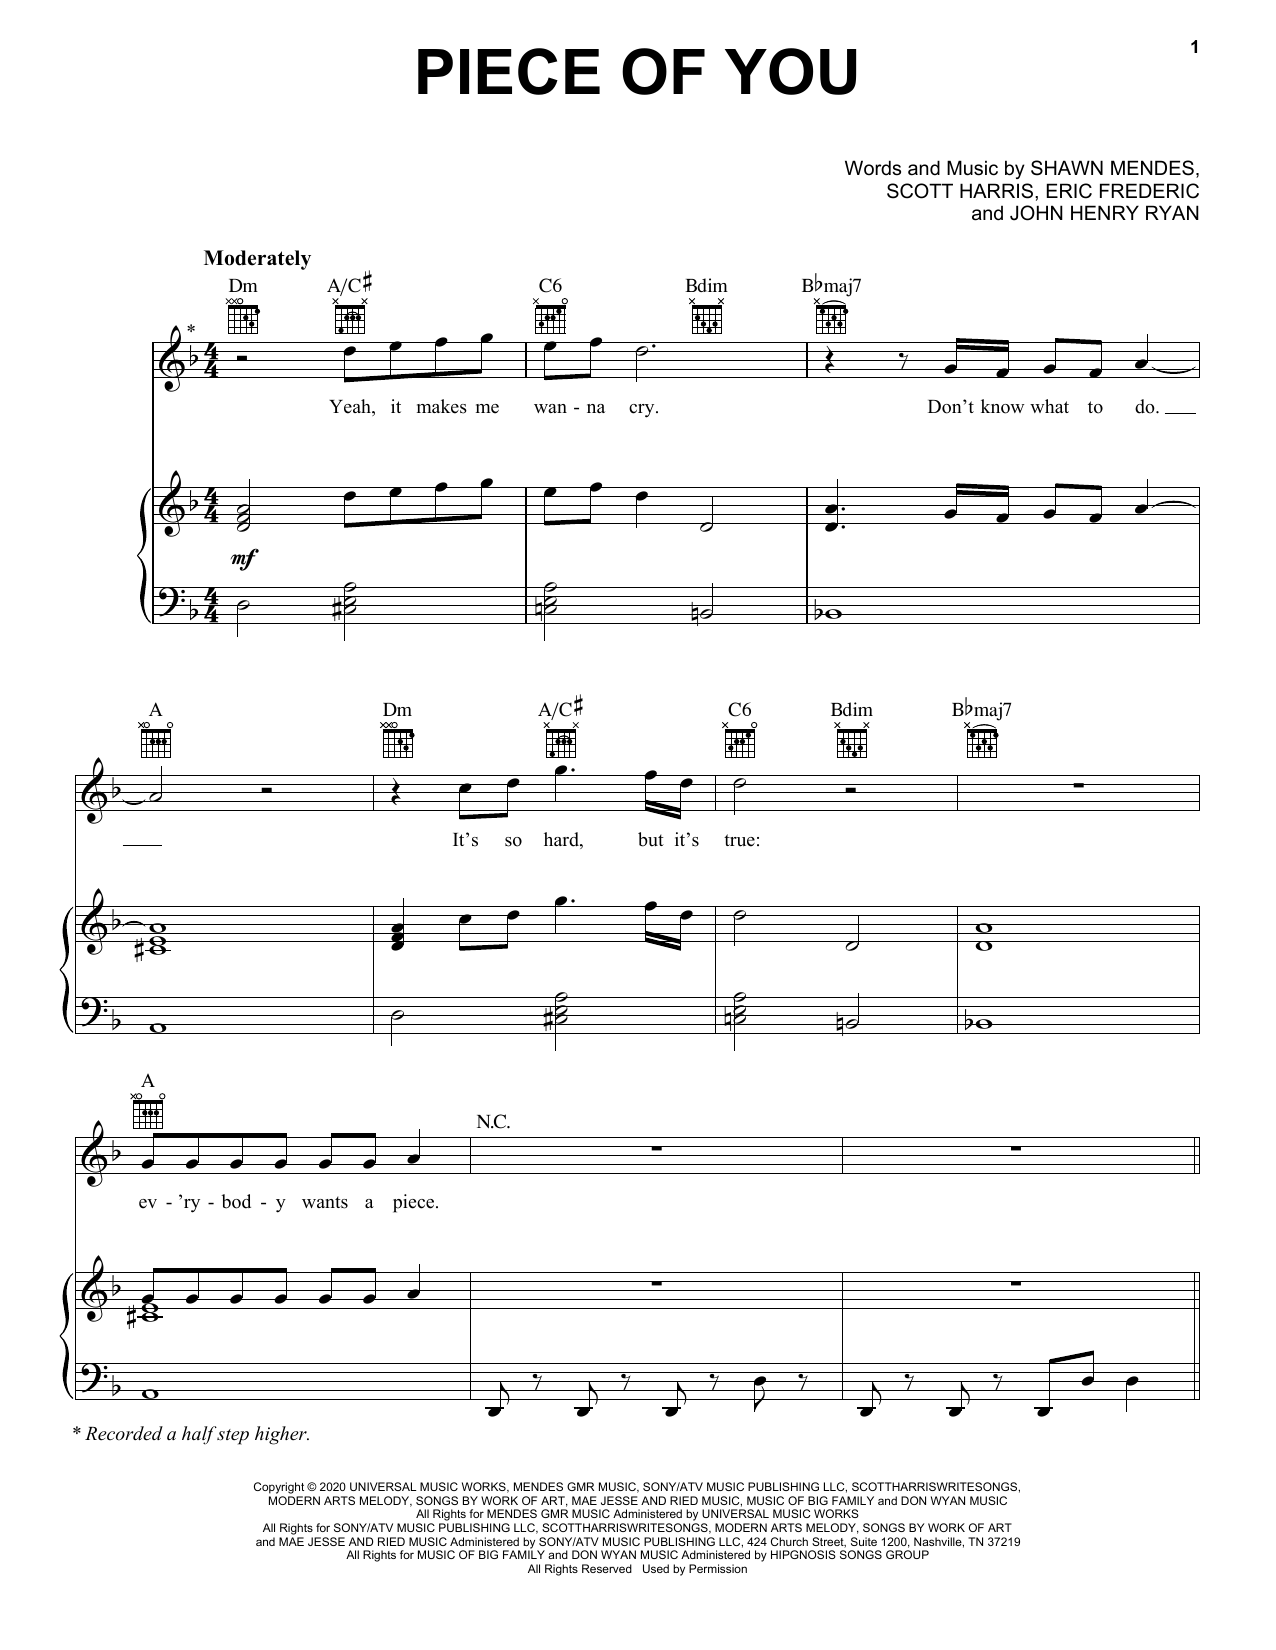 Shawn Mendes Piece Of You sheet music notes printable PDF score